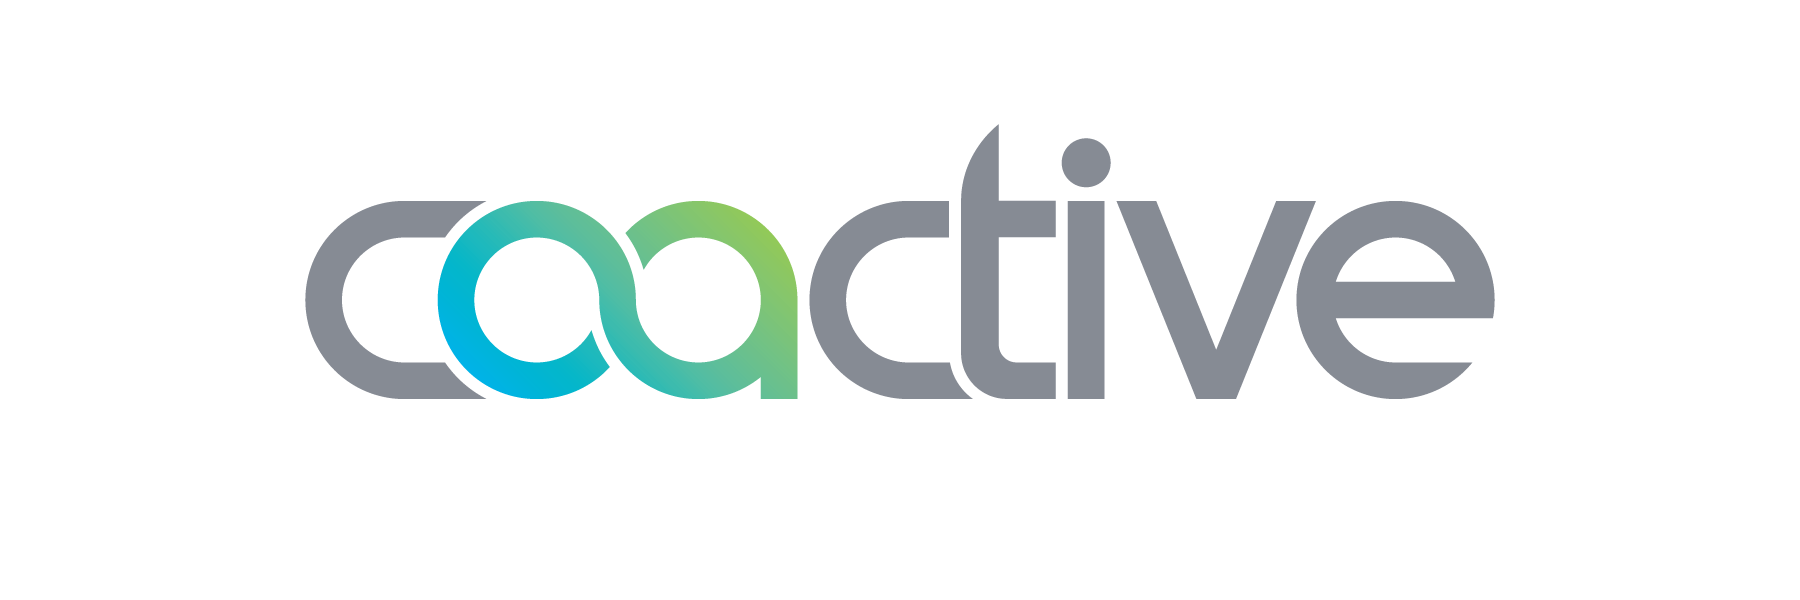 coactive_primary_logotype.png